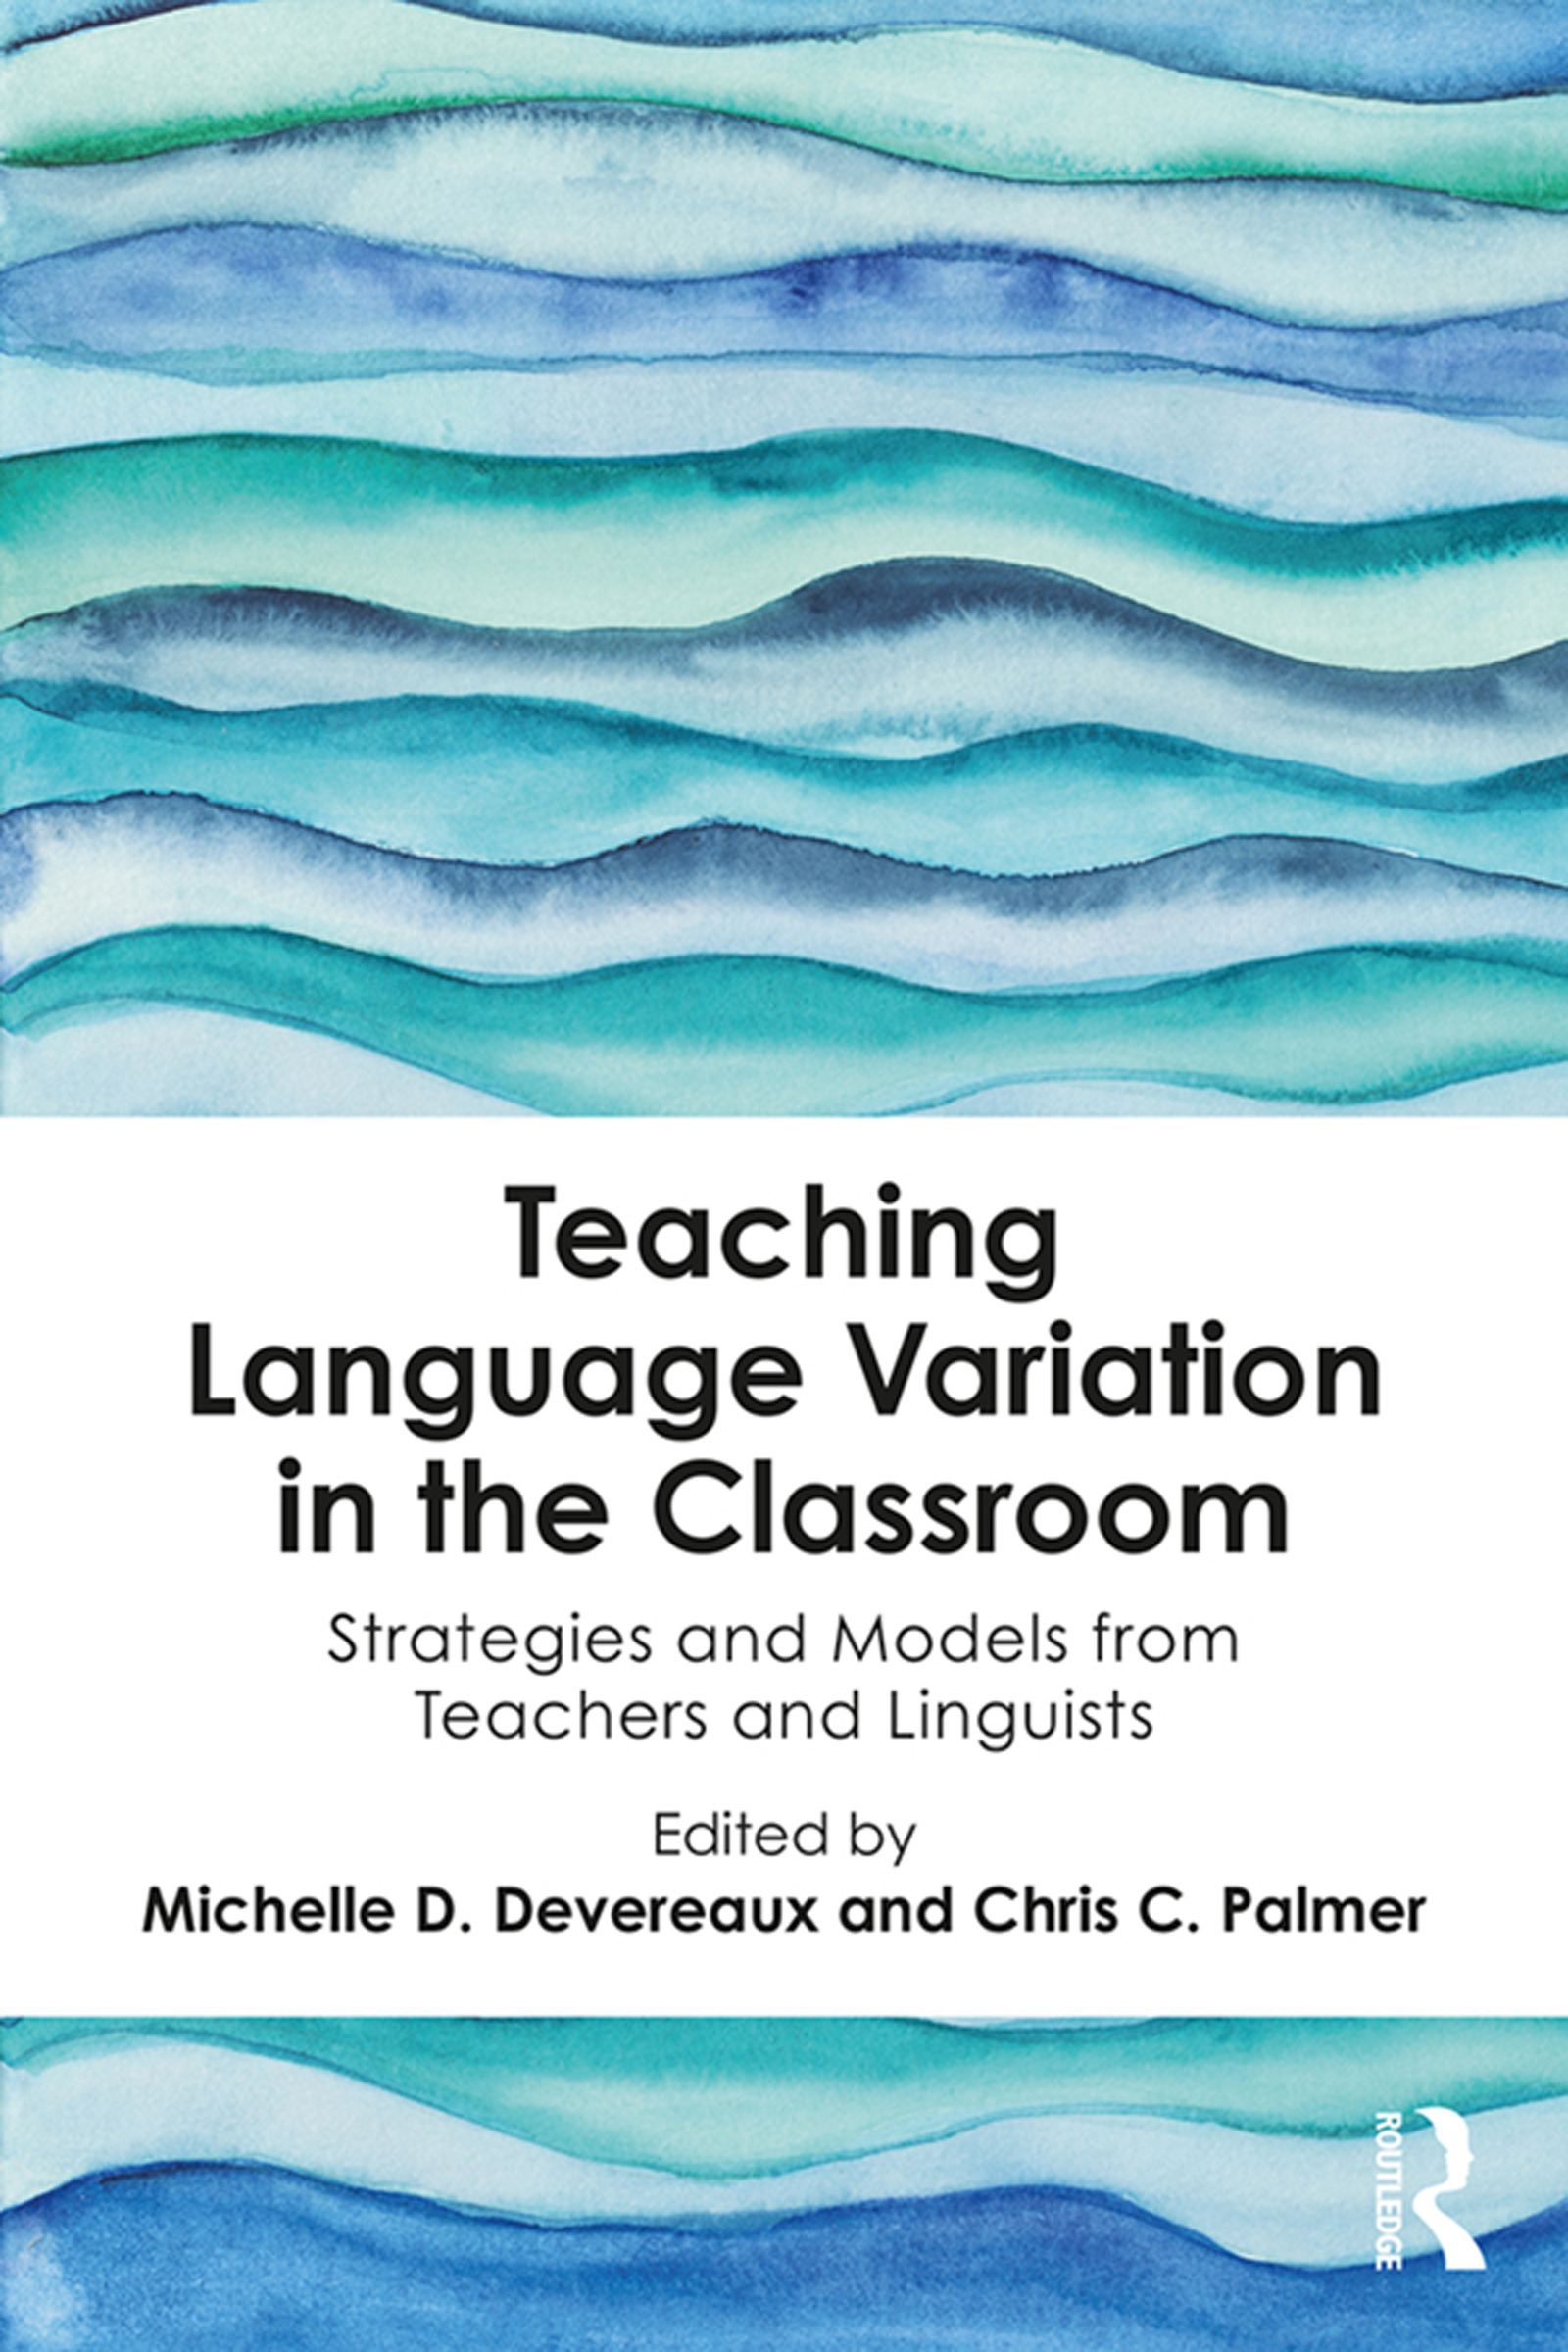 Teaching Language Variation in the Classroom: Strategies and Models from Teachers and Linguists book cover